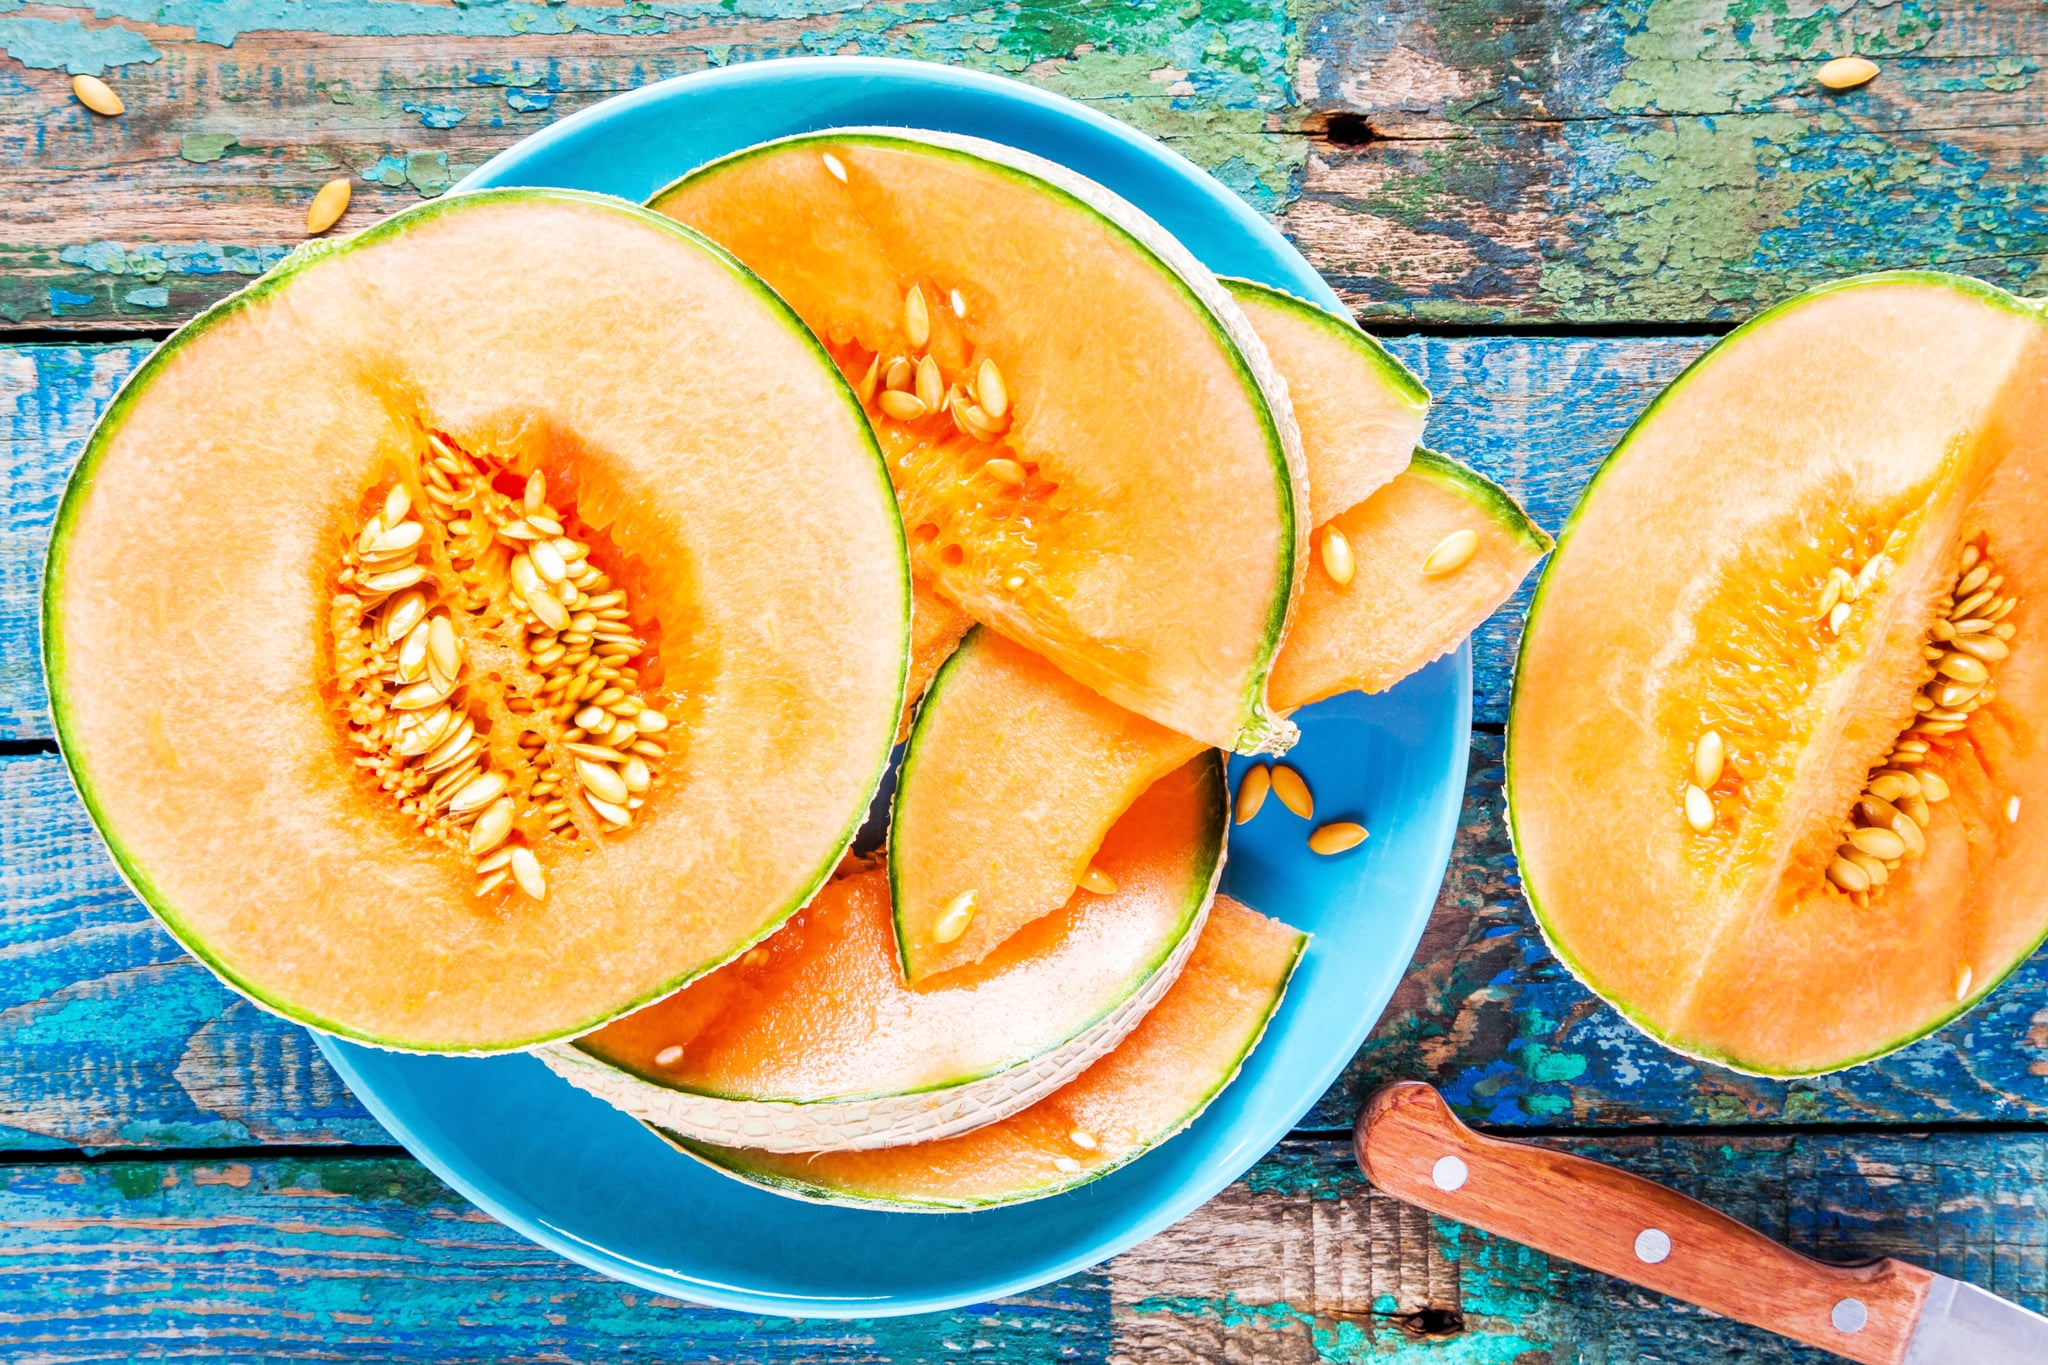 Listeria sickens 10 in Australia with link to rockmelon